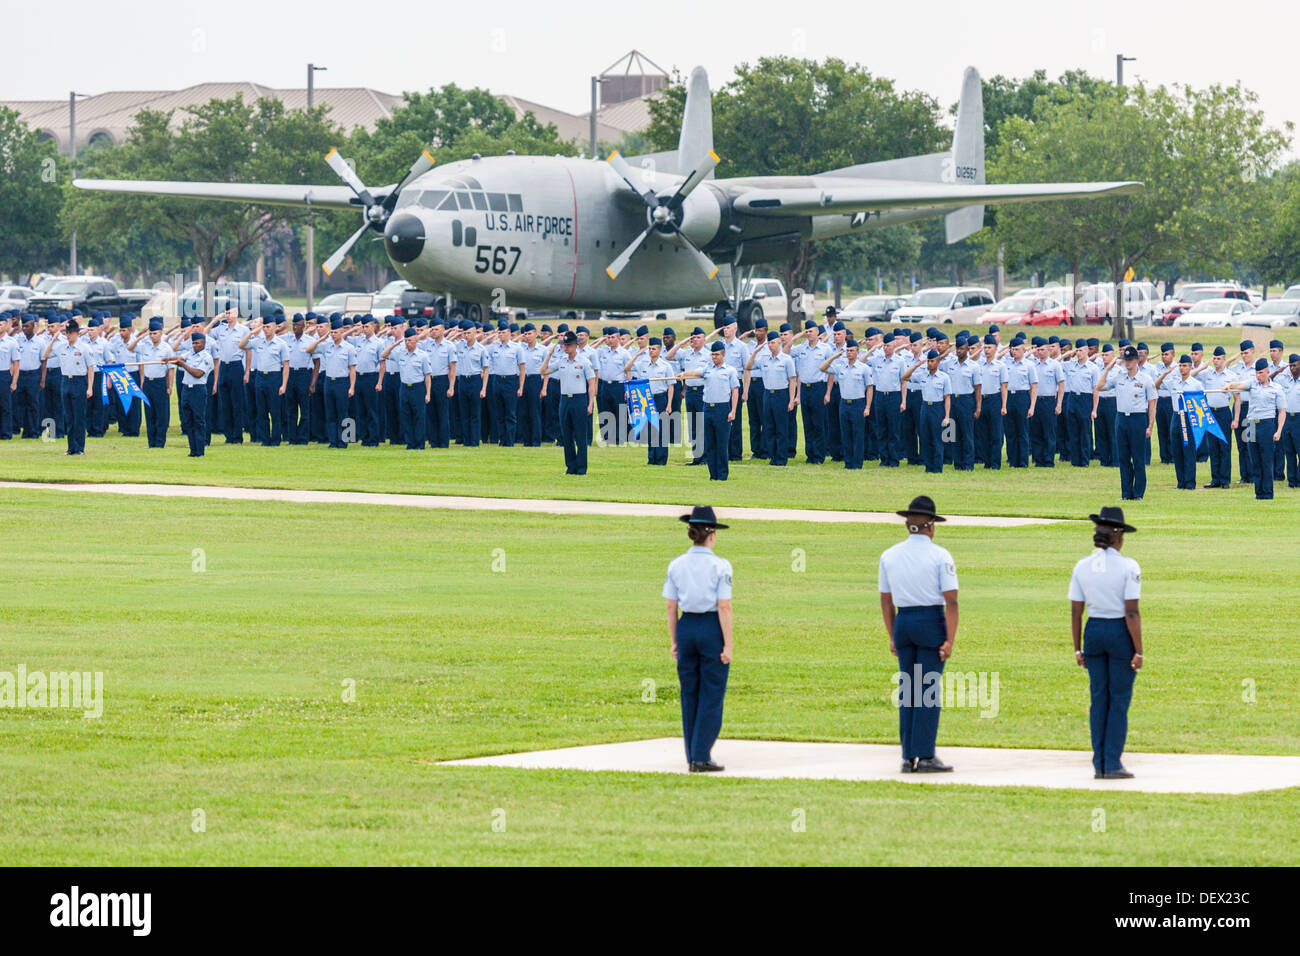 Flights of airmen in formation during United States Air Force basic training graduation ceremonies In San Antonio, Texas - Stock Image